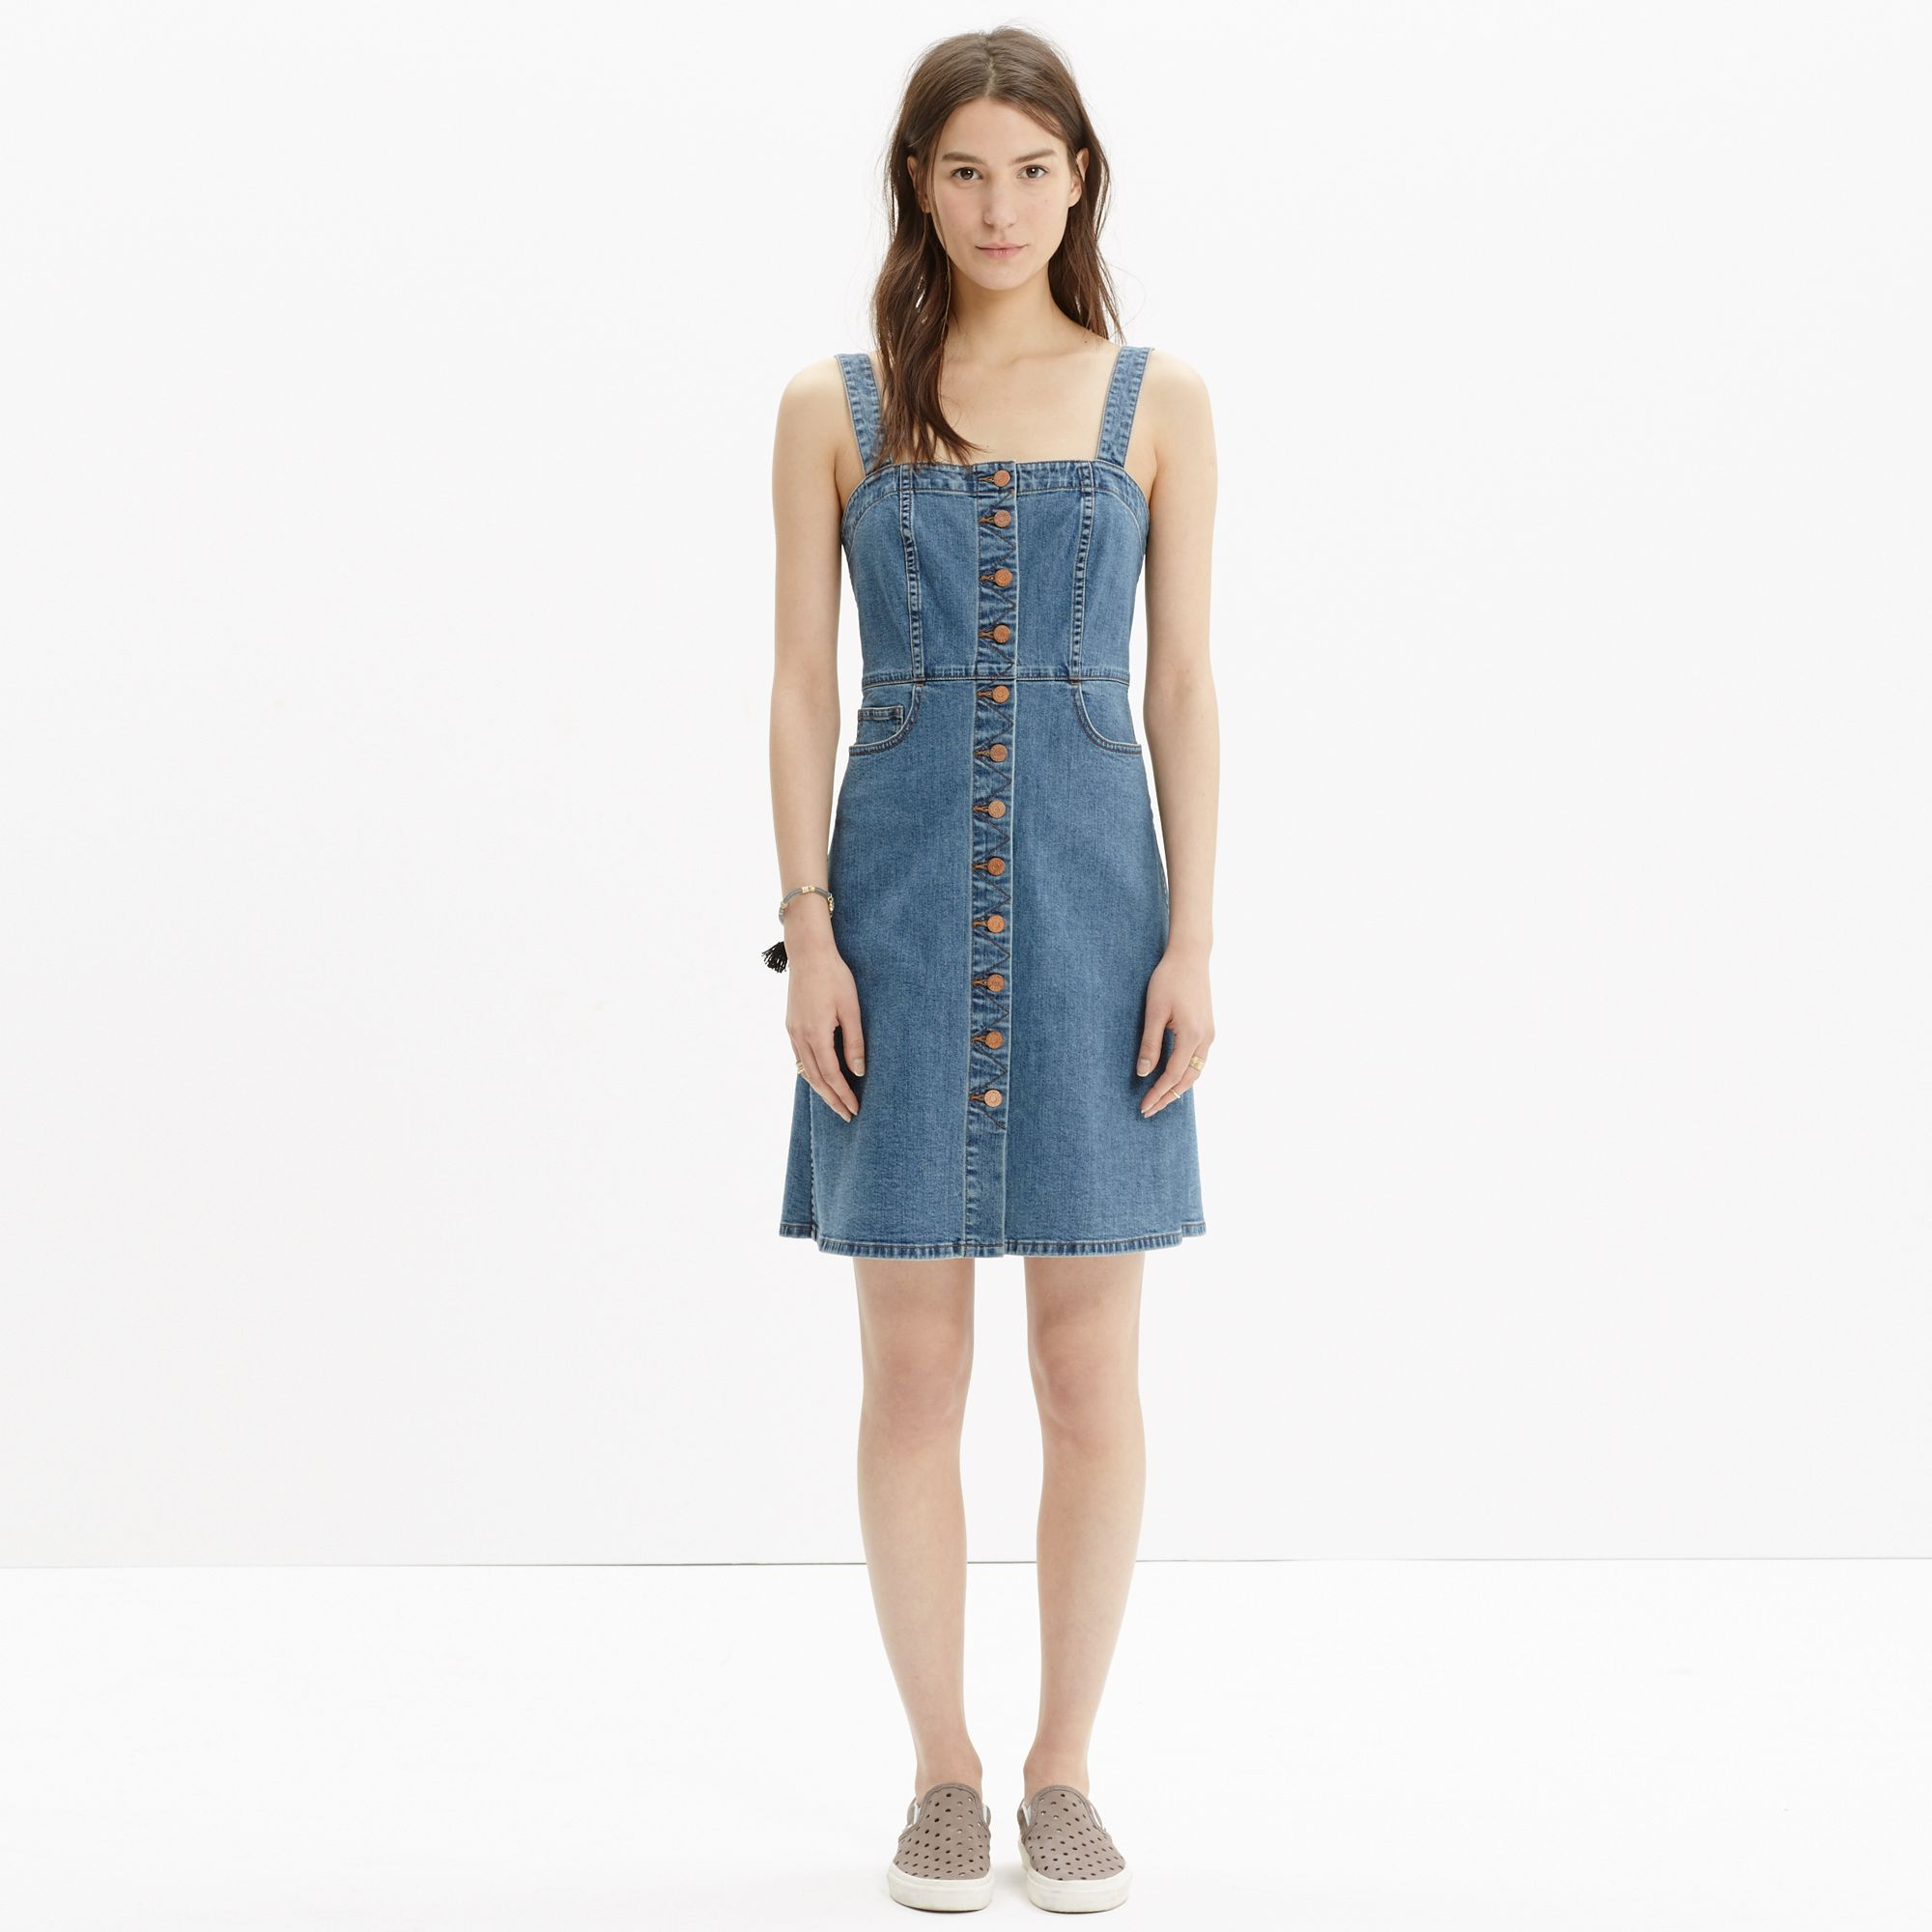 ASOS DESIGN Curve denim midi overall dress in midwash blue. $ ASOS DESIGN denim midi overall dress in mid wash blue. $ ASOS DESIGN Tall denim shirt dress with deep cuff in washed black. $ The Simpsons x ASOS DESIGN all over print denim pinafore dress. $